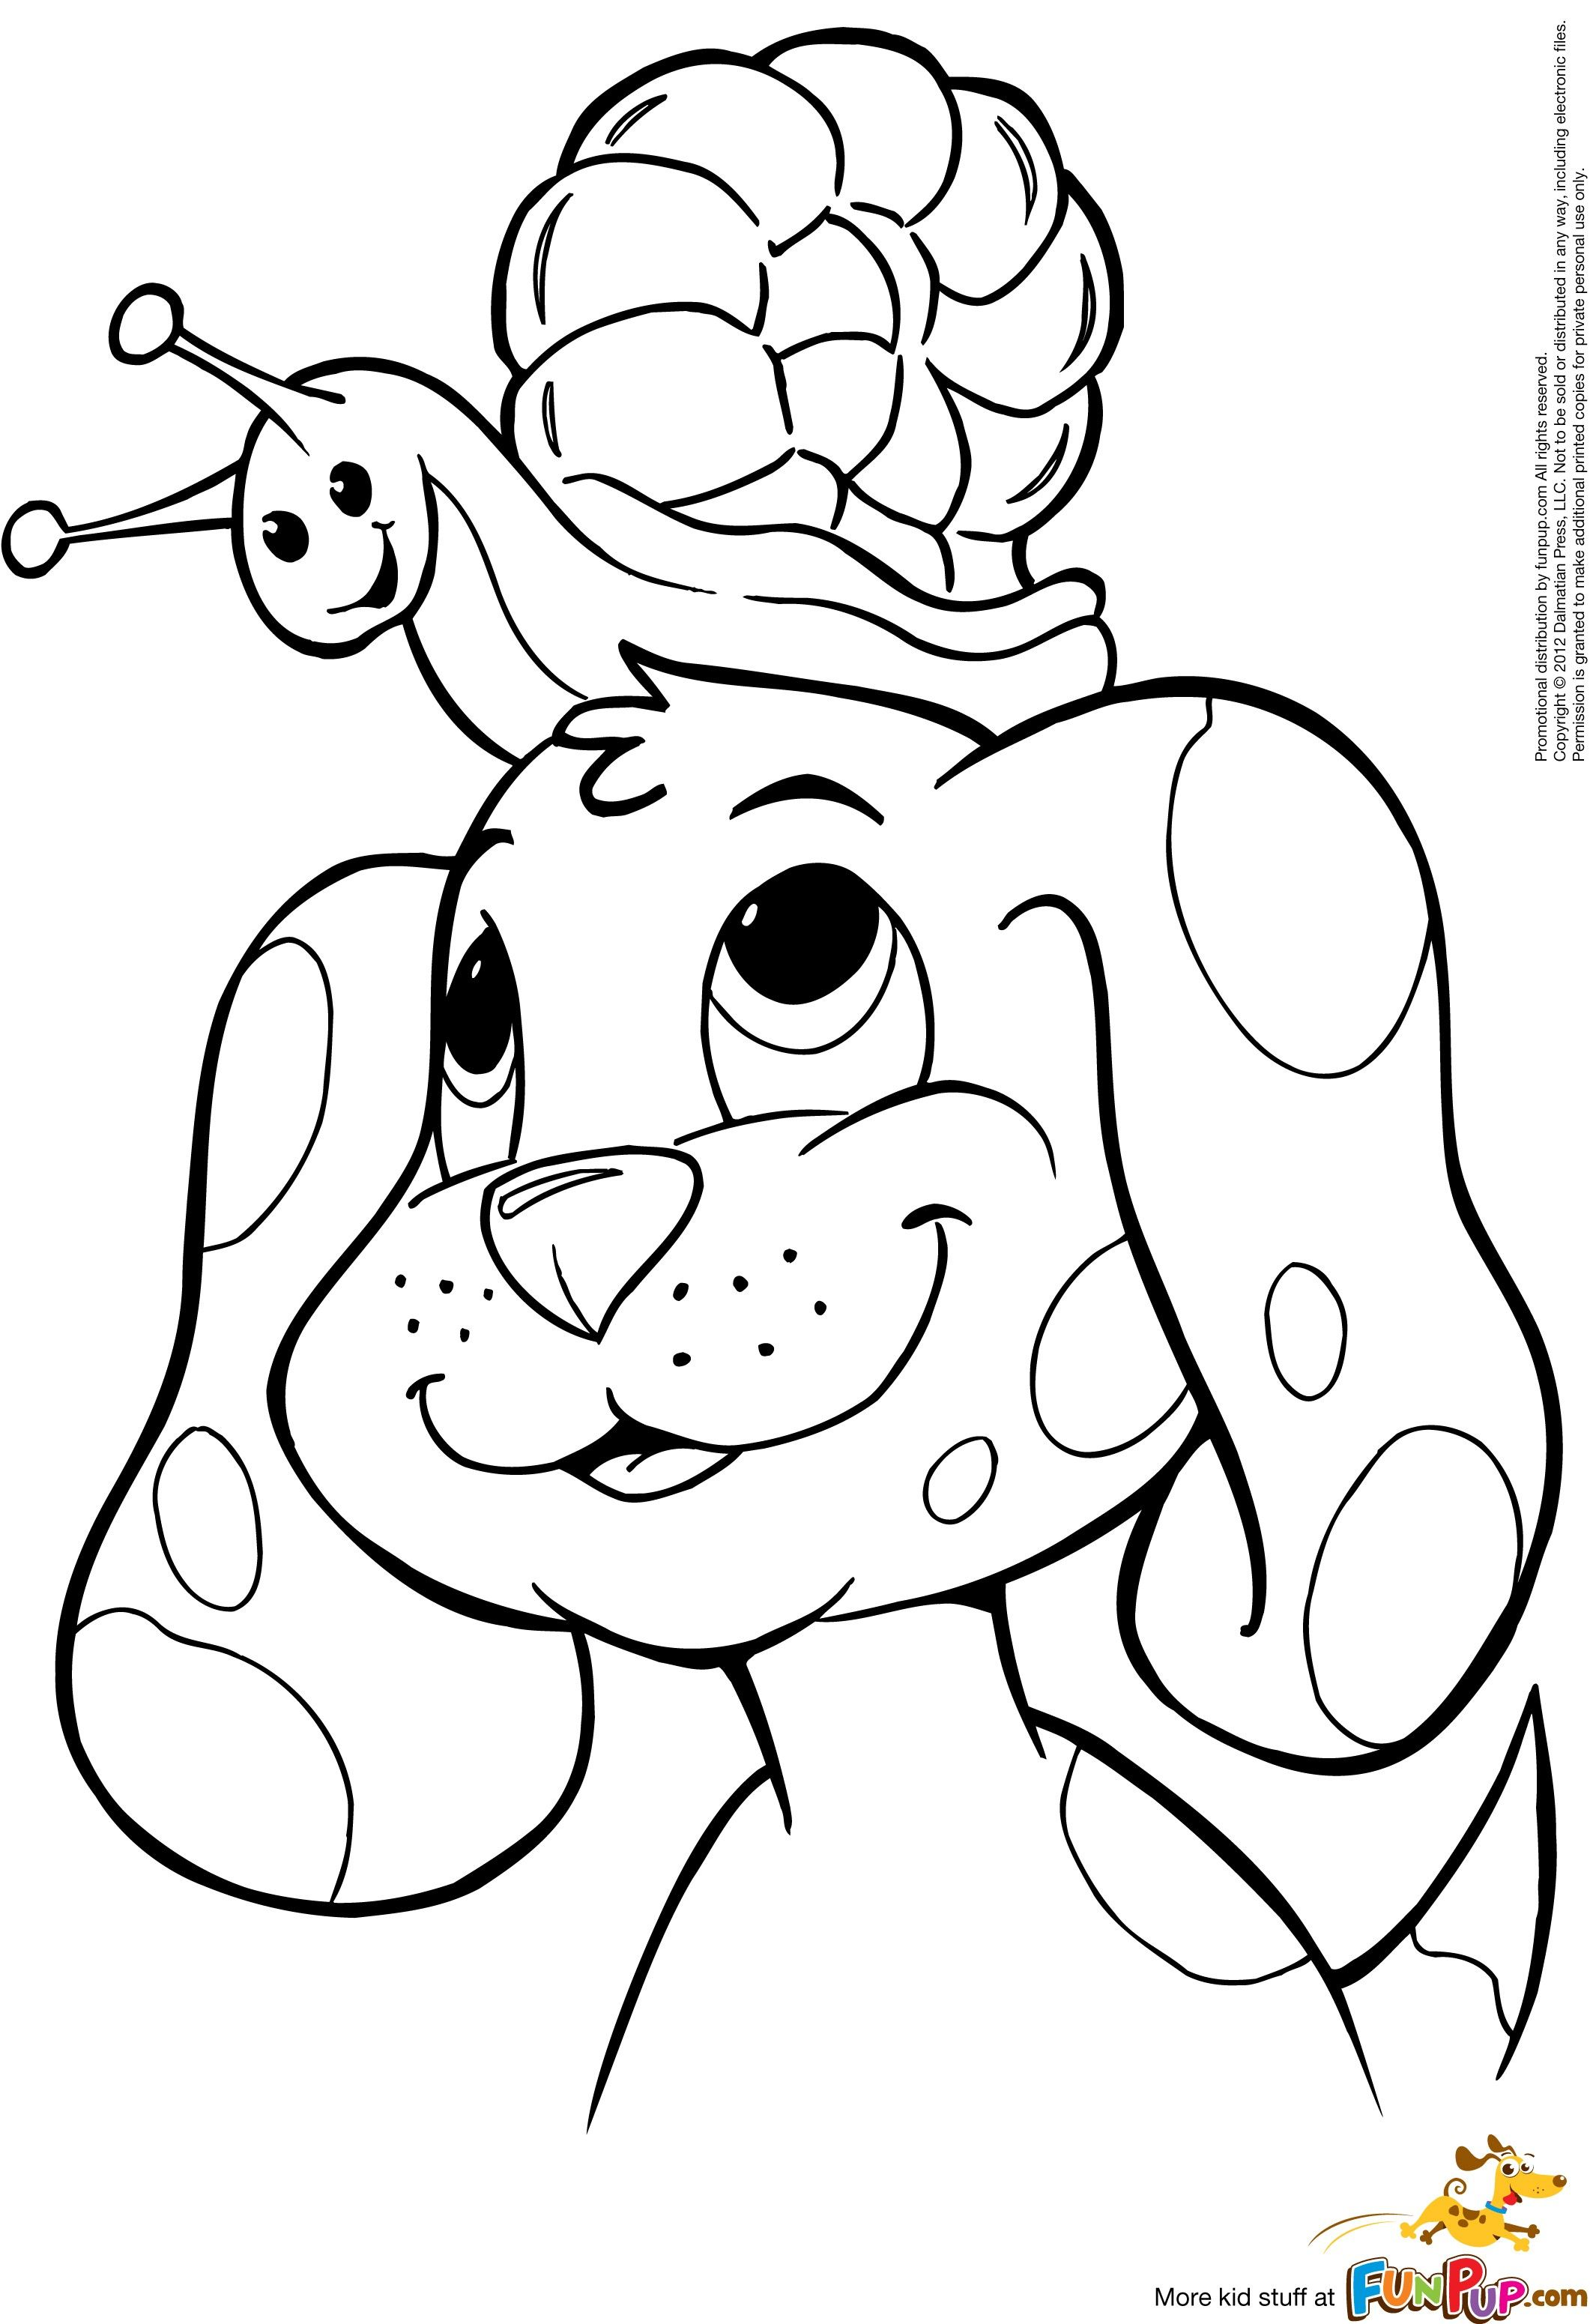 Puppy 1 0 colouring pages Clip Art Miscellaneous Puppy